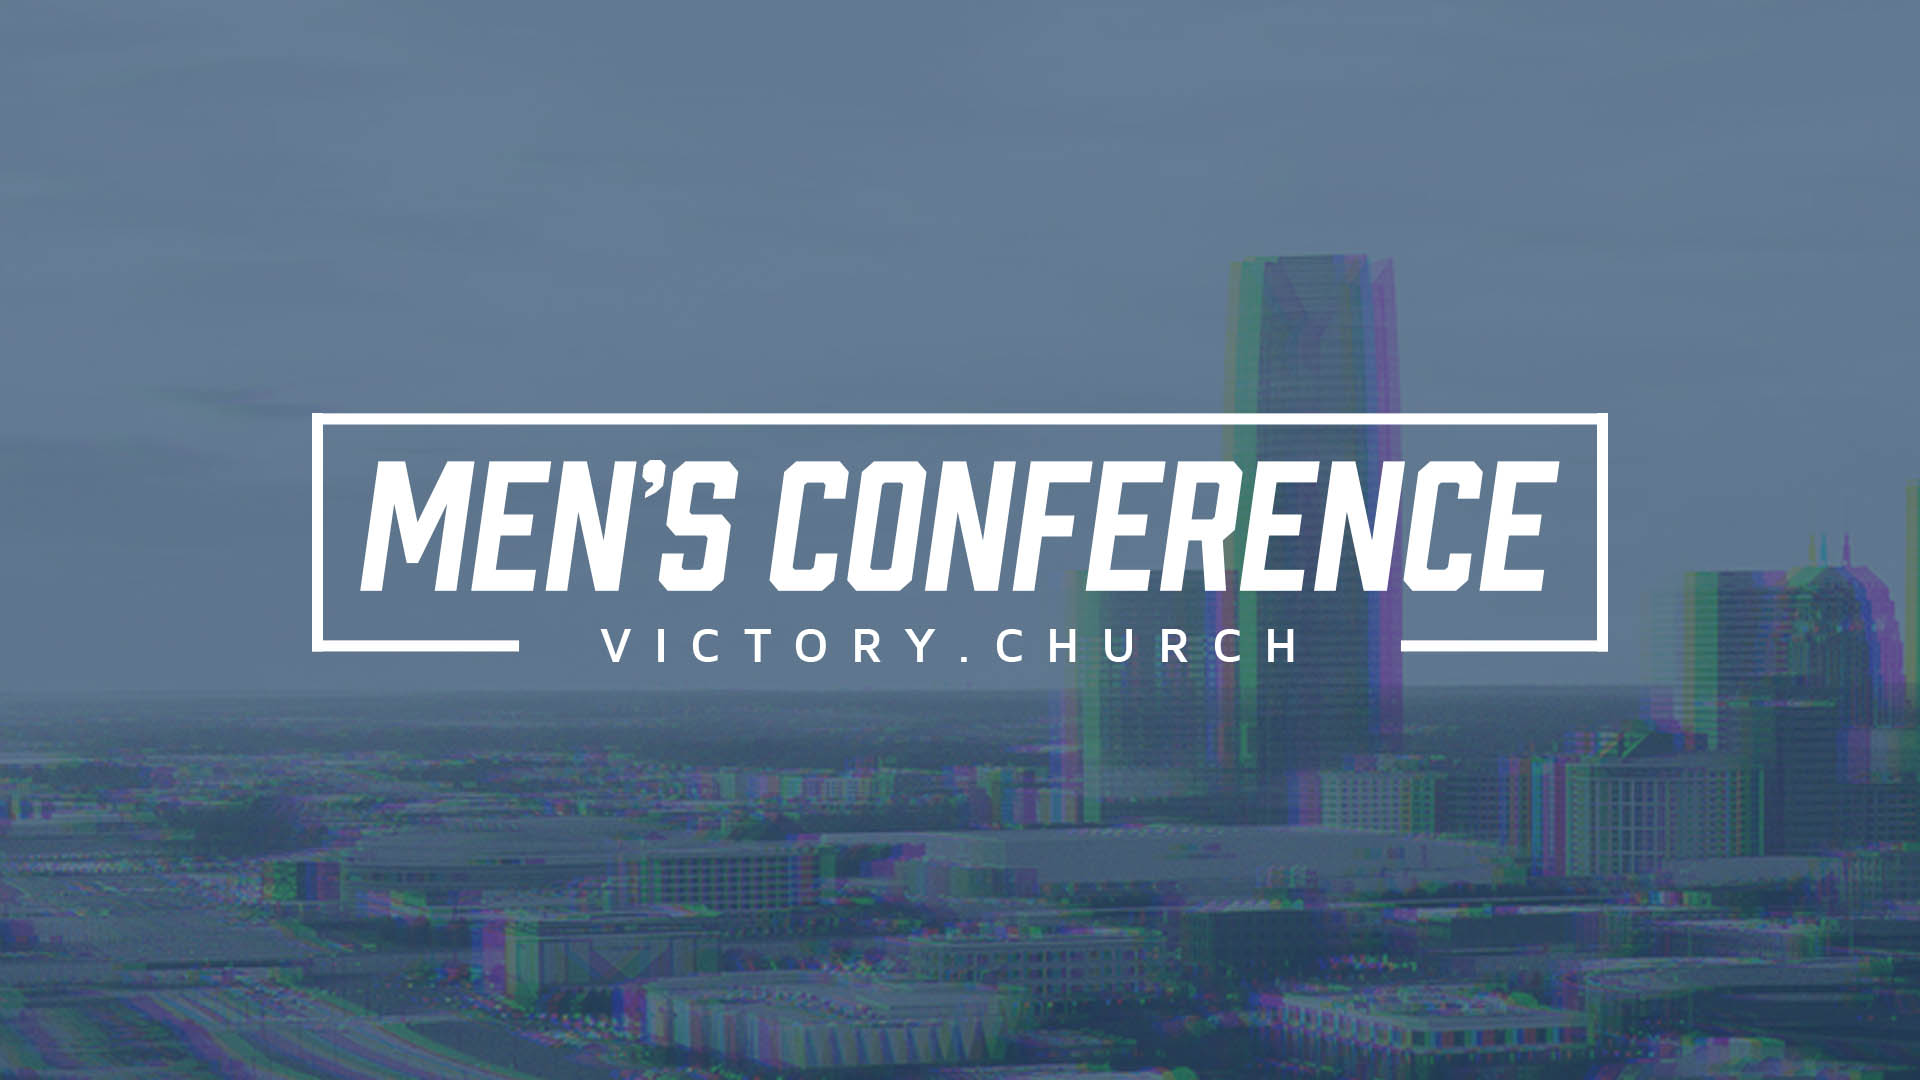 Men's Conference 2020 at Victory Church